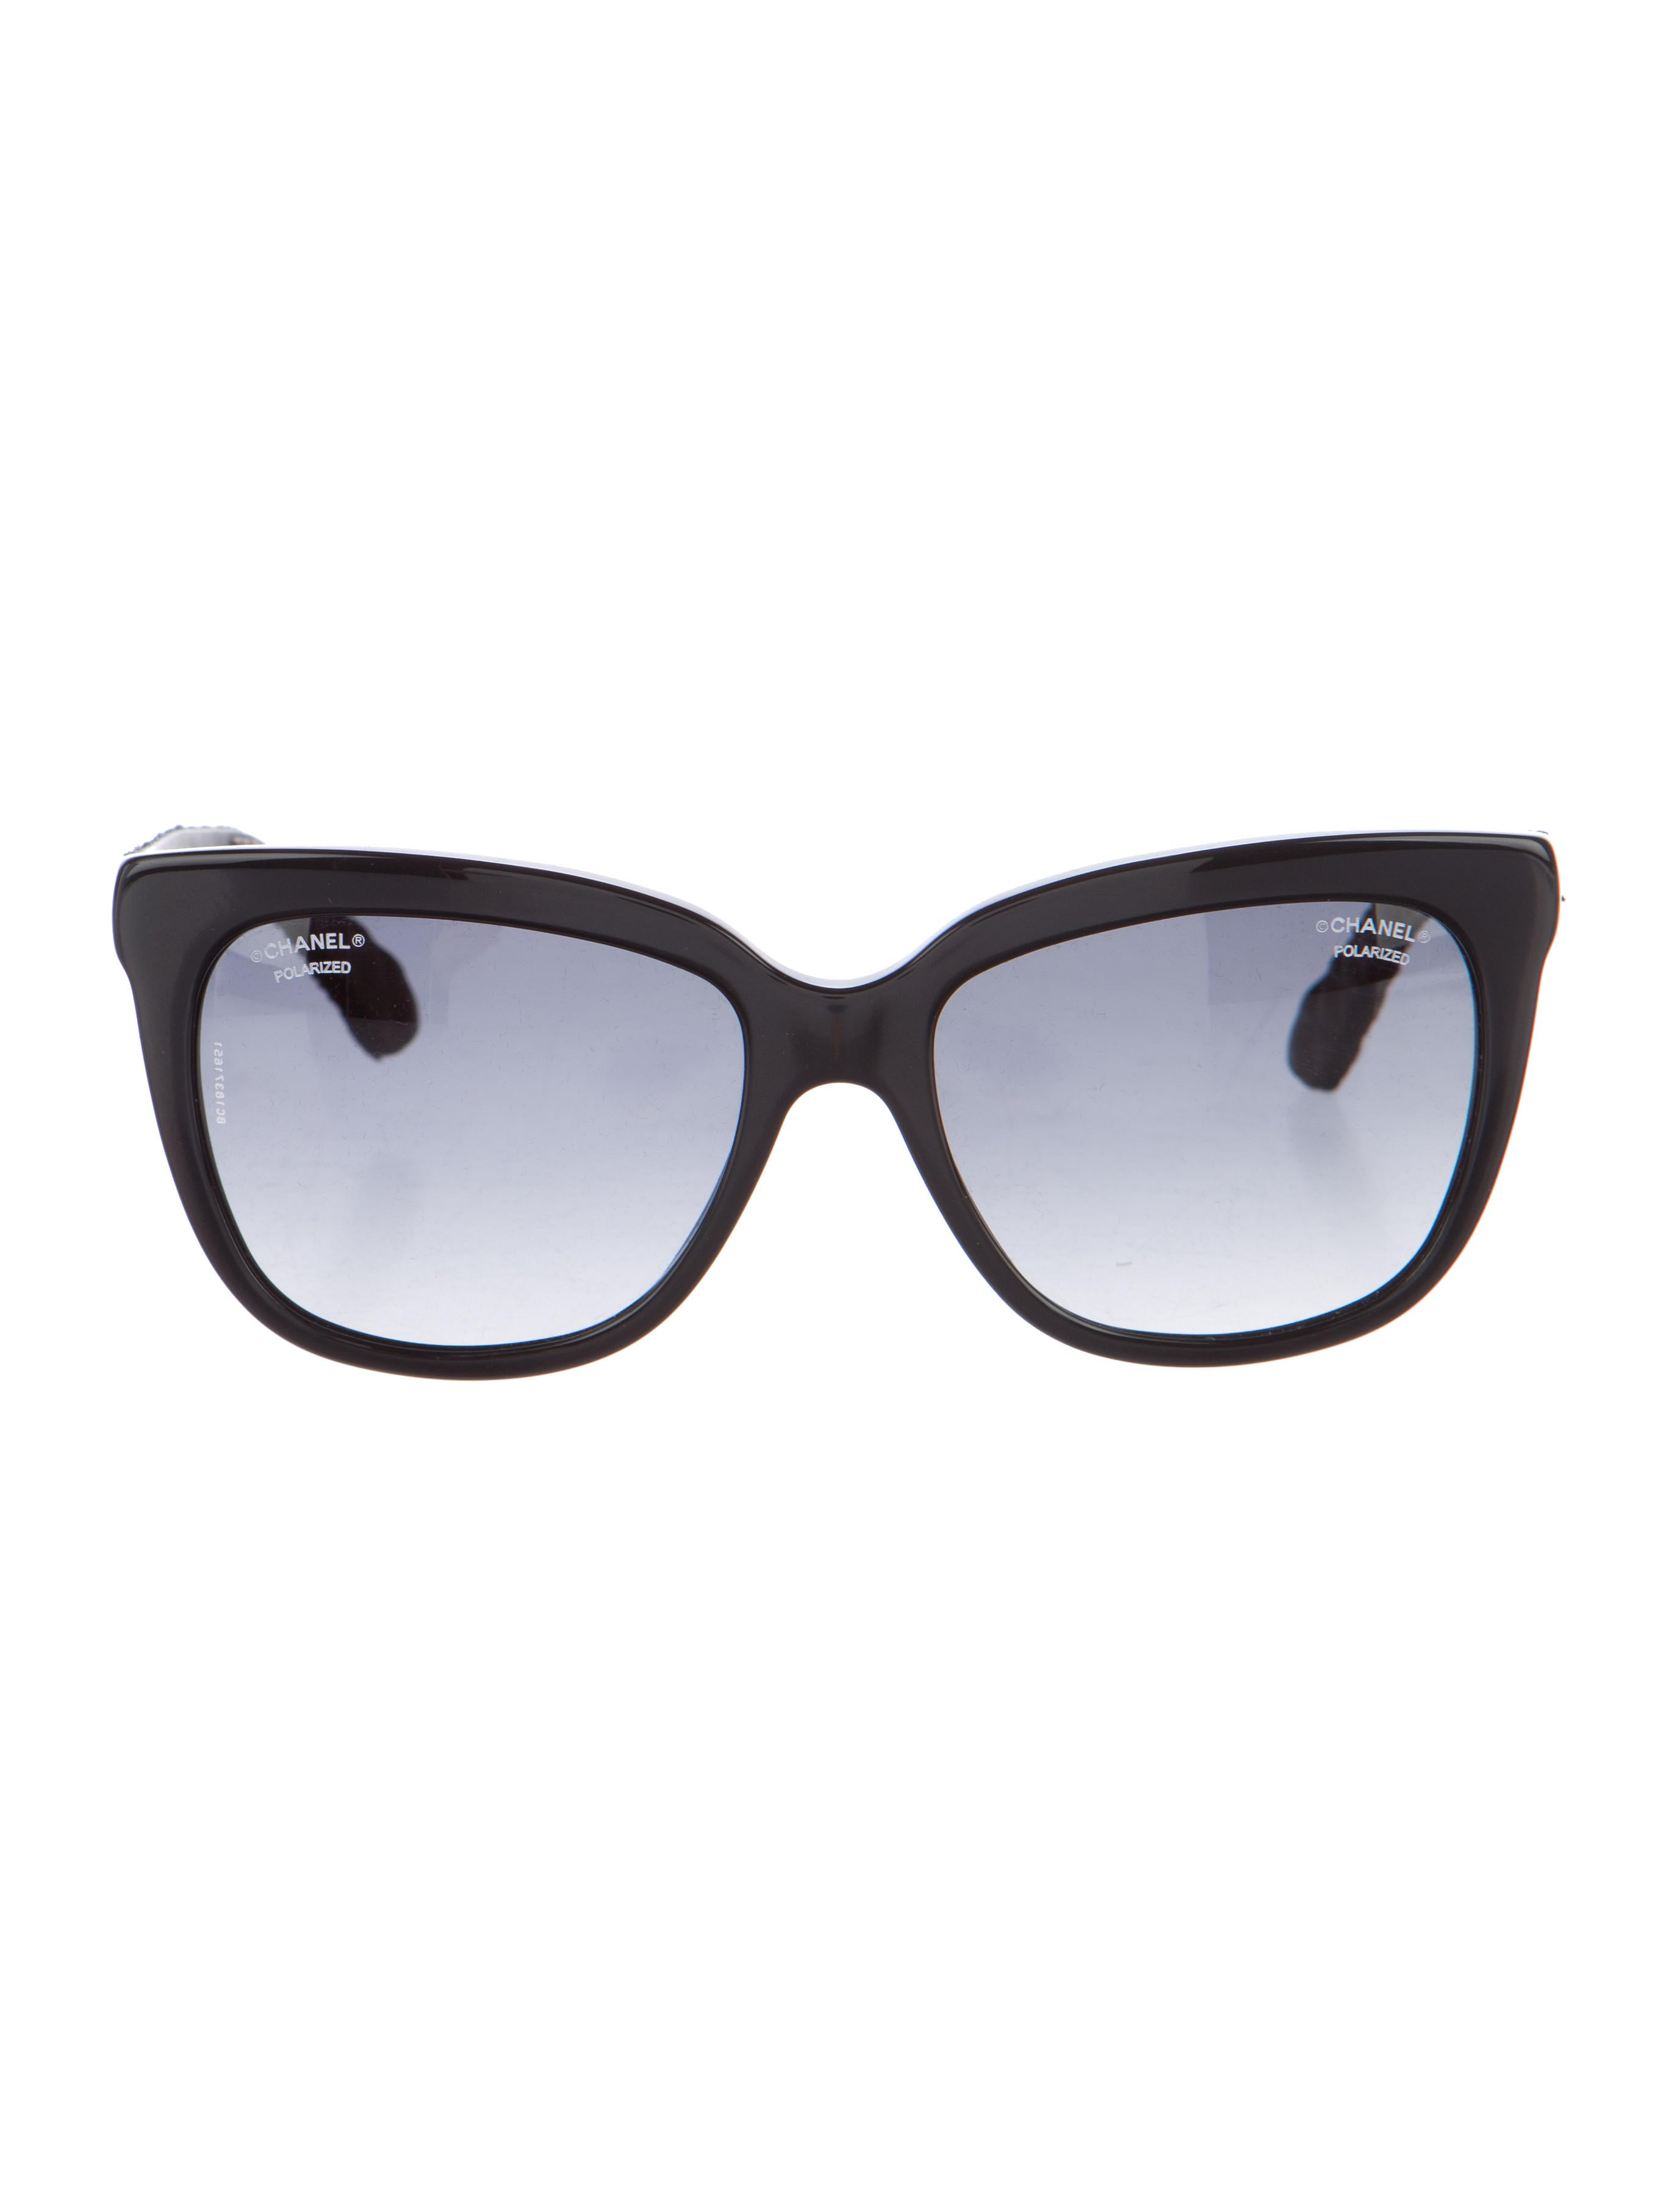 Chanel Square Quilting Sunglasses Accessories Cha148843 The